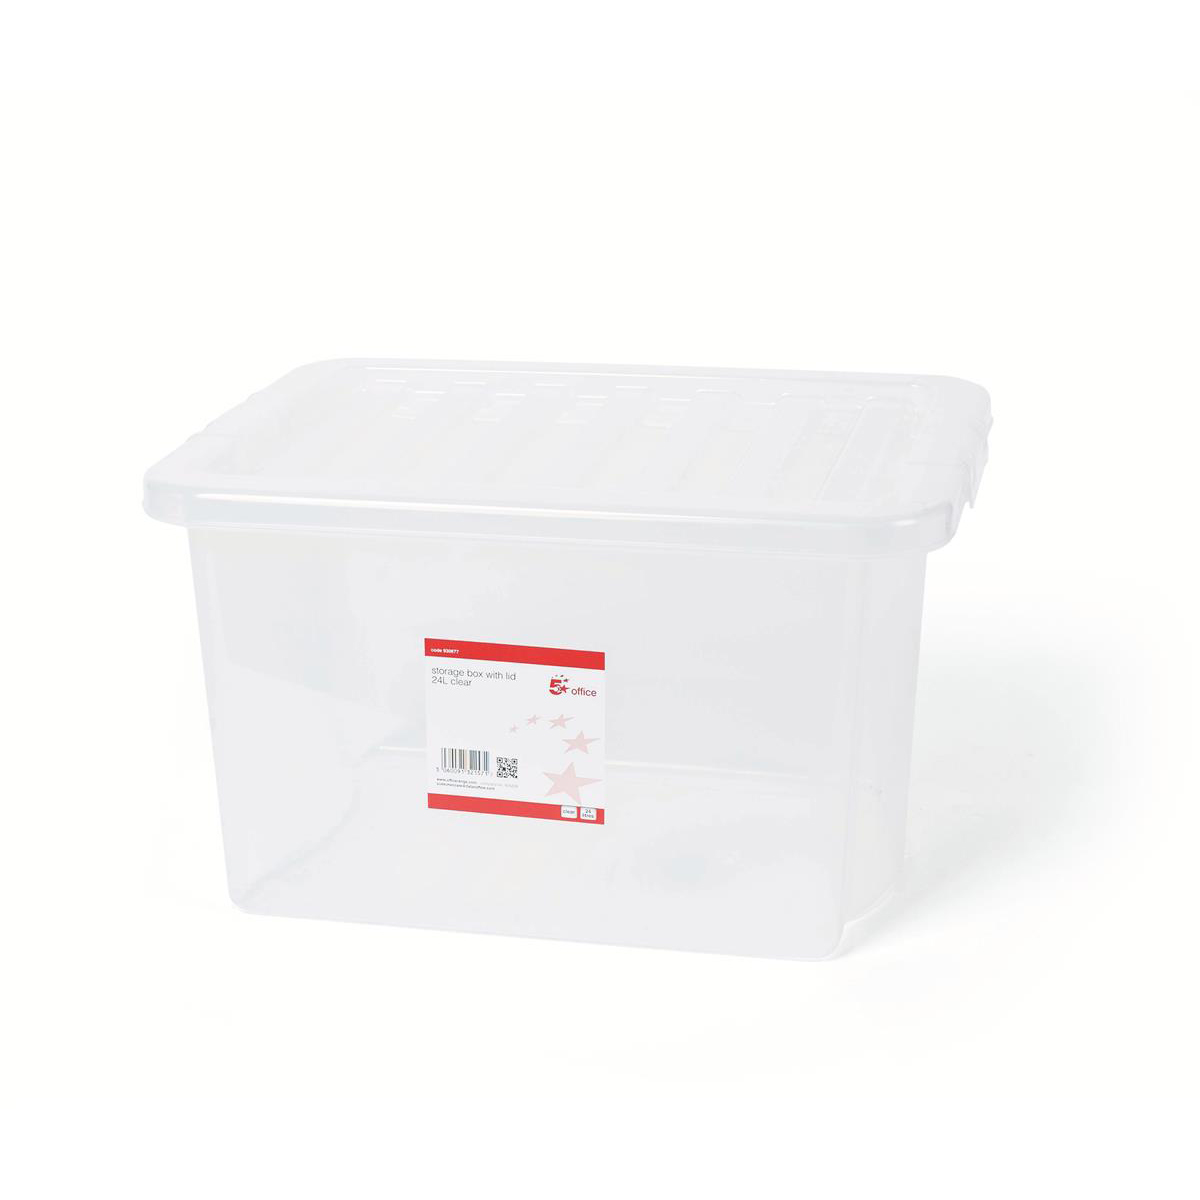 Storage Boxes 5 Star Office Storage Box Plastic with Lid Stackable 24 Litre Clear